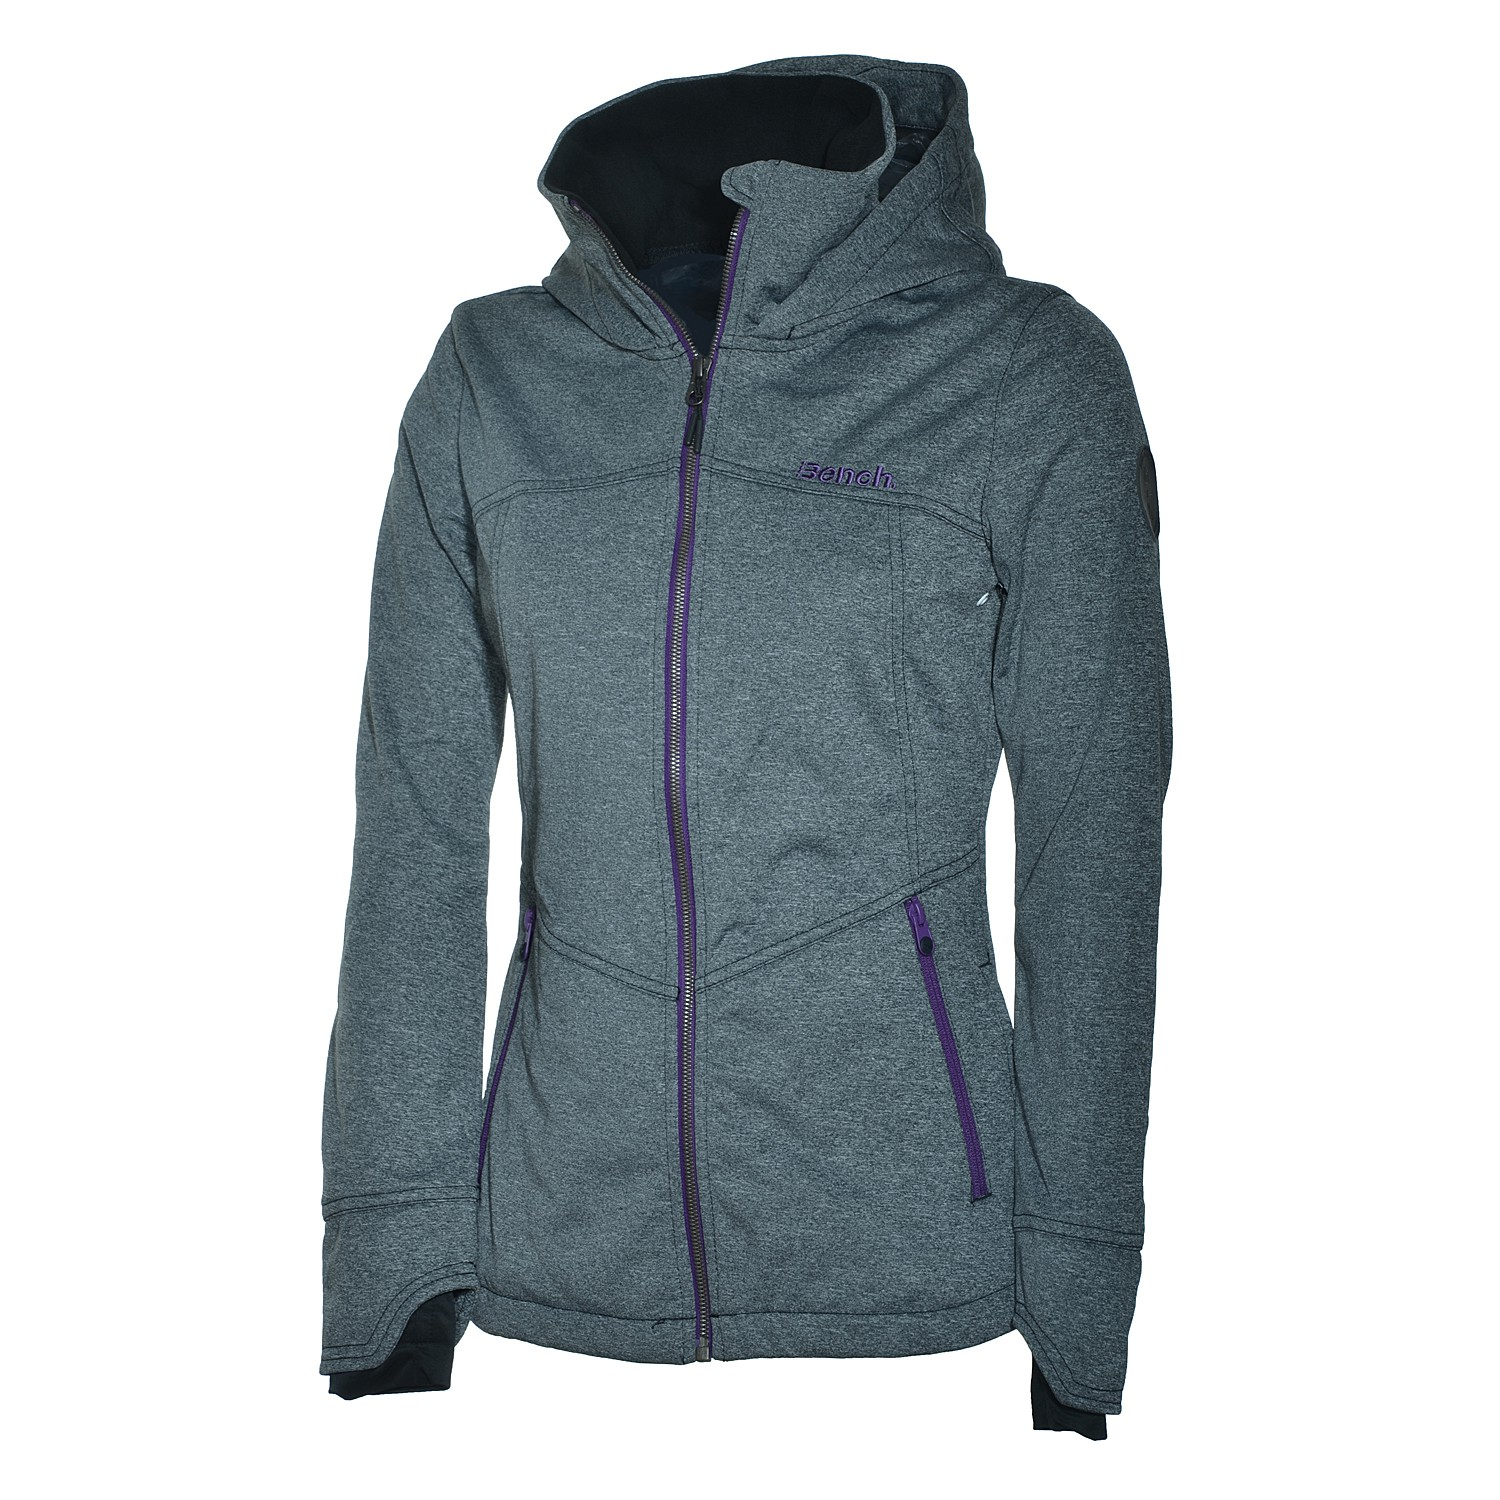 bench killer damen softshelljacke warme jacke grey jacke softshell ebay. Black Bedroom Furniture Sets. Home Design Ideas